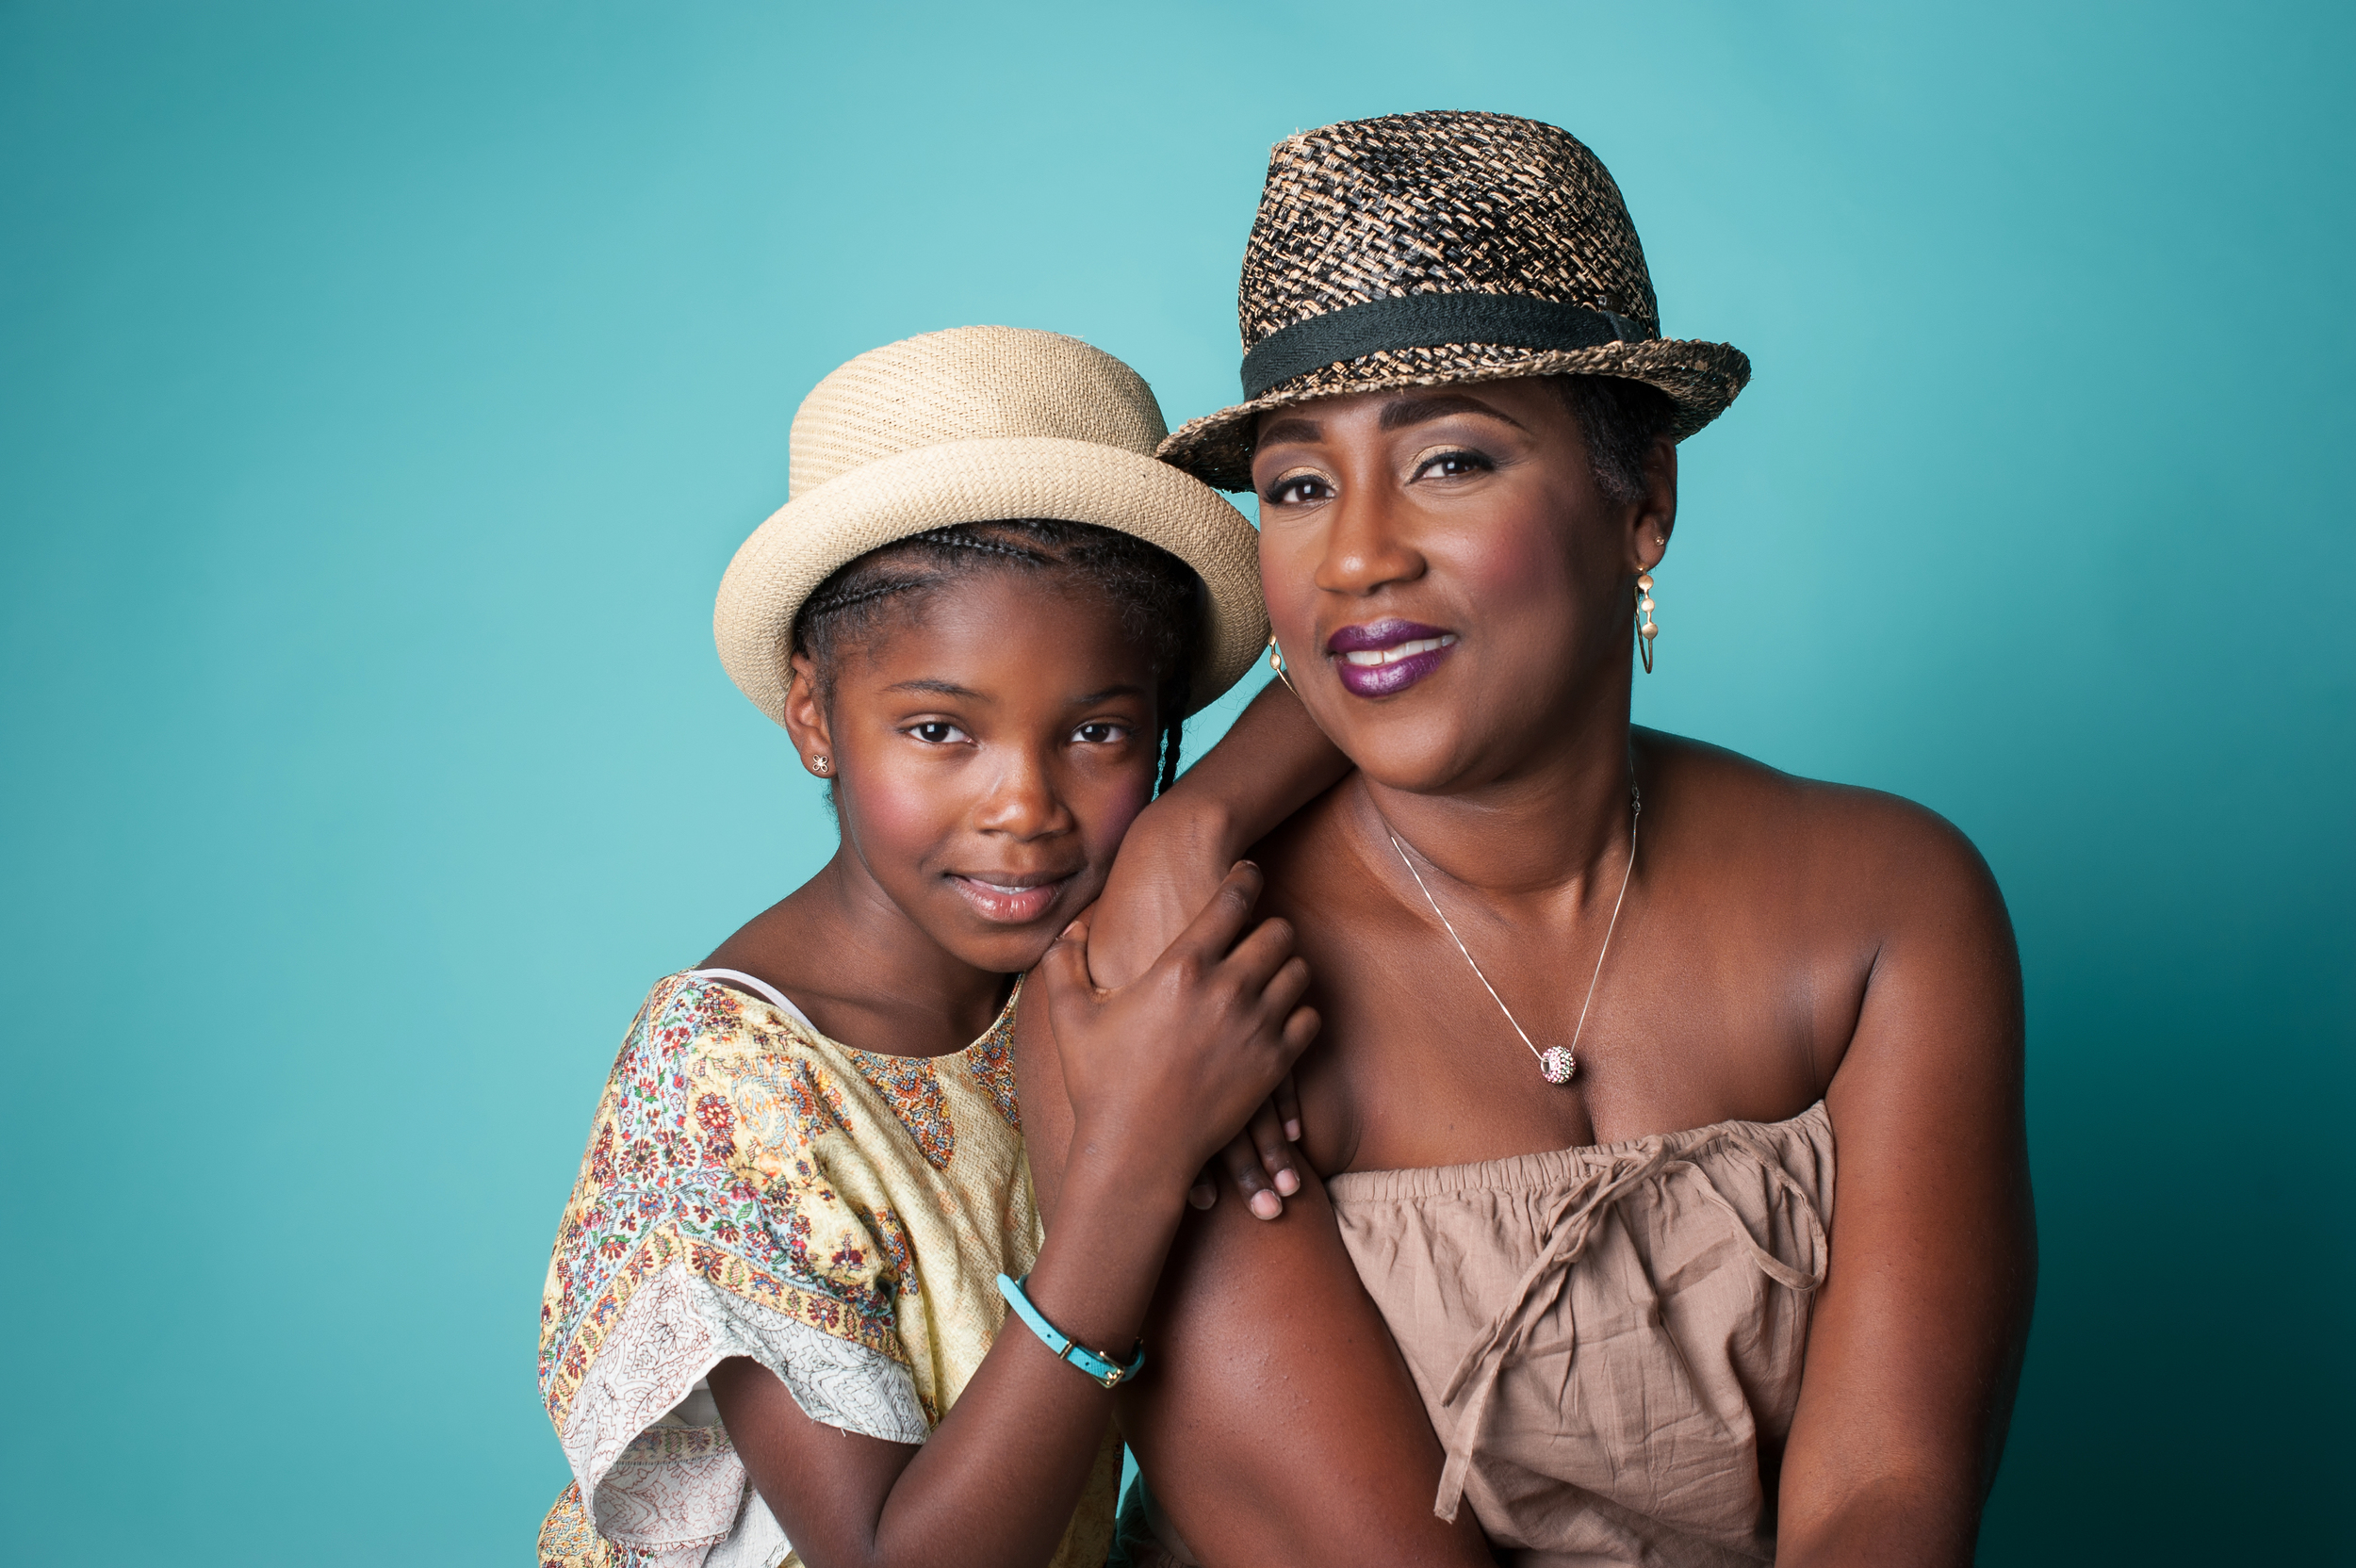 Mother and Daughter Beauty Glamour Photo | Nomee Photography | Chicago Family Photographer in the studio